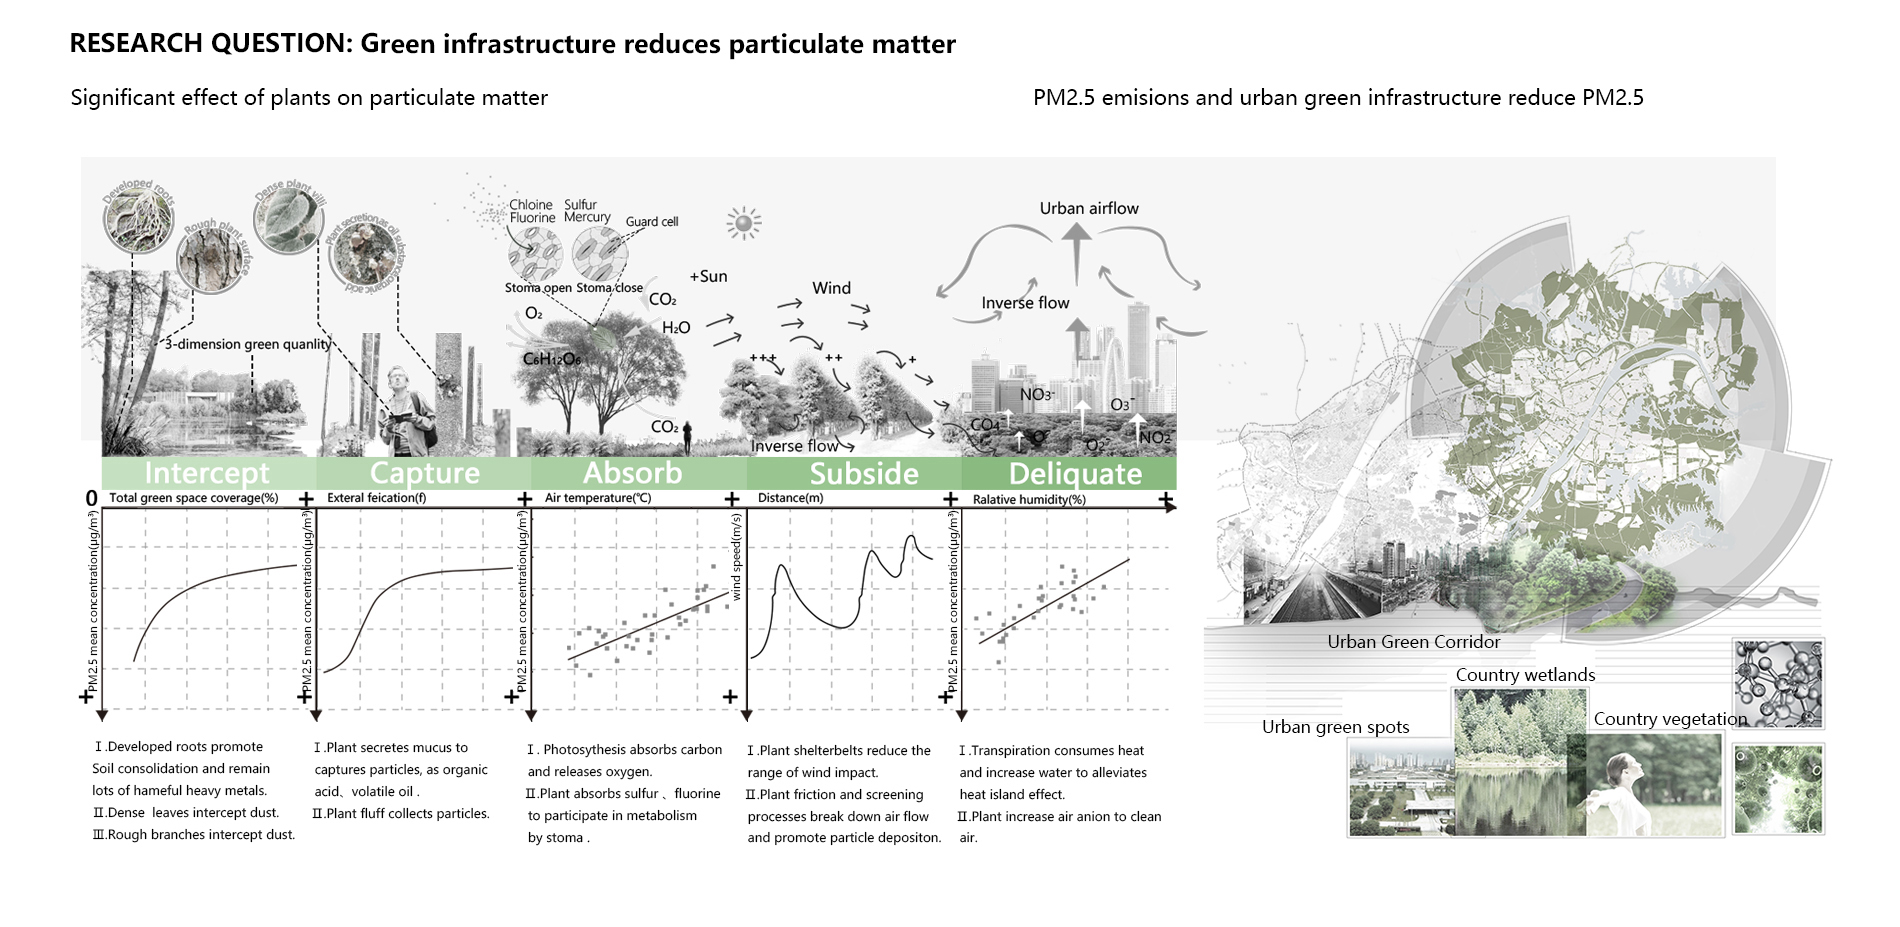 Research question: Green infrastructure reduces particulate matter